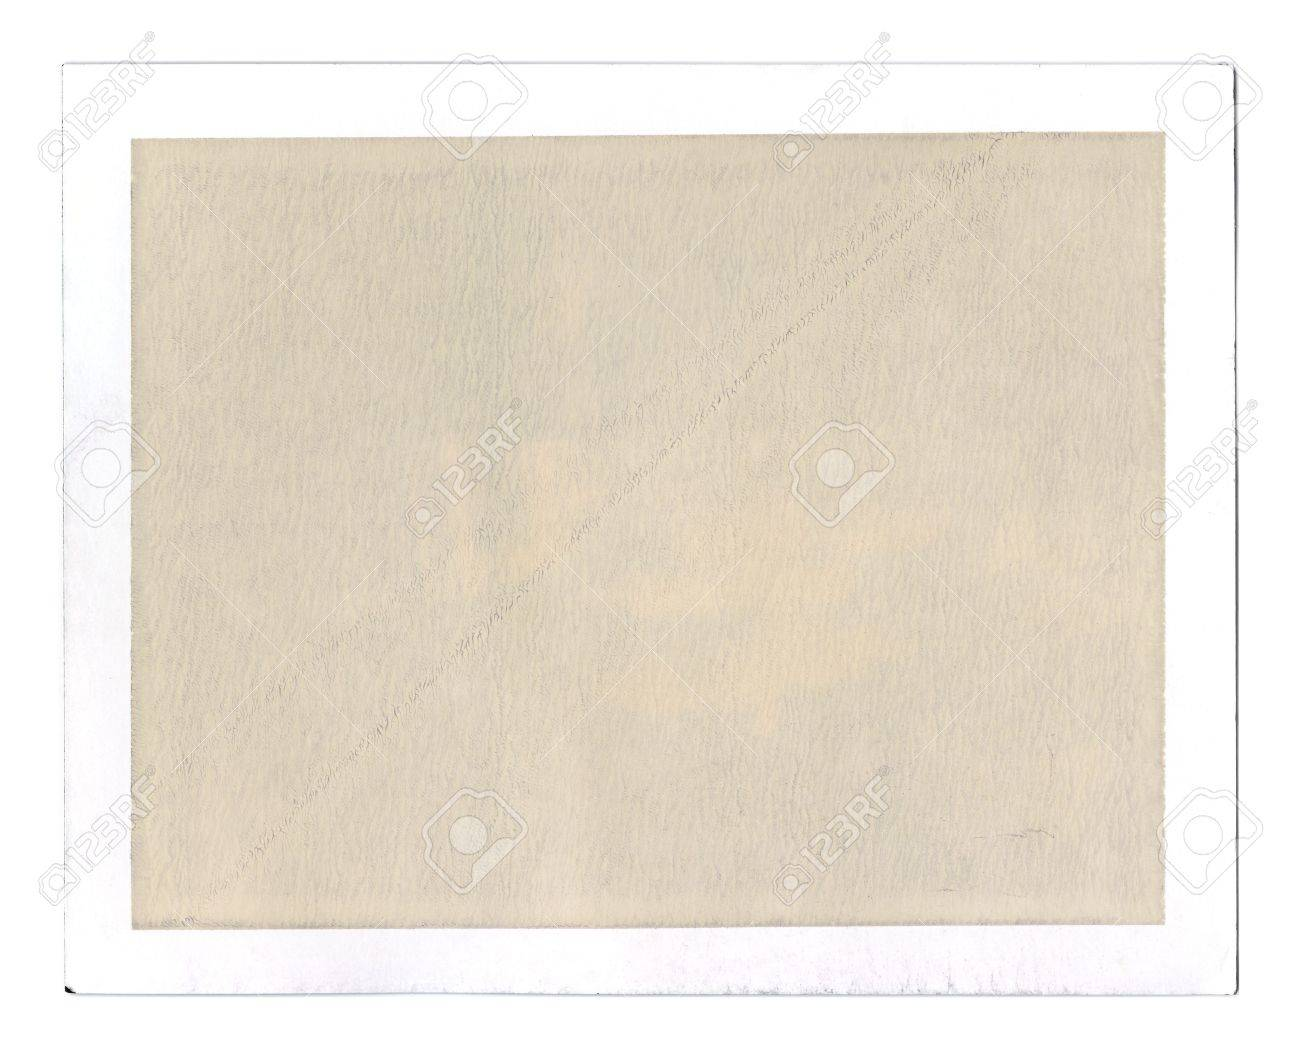 old grungy blank peel apart instant film frame textured sepia filling for overlay